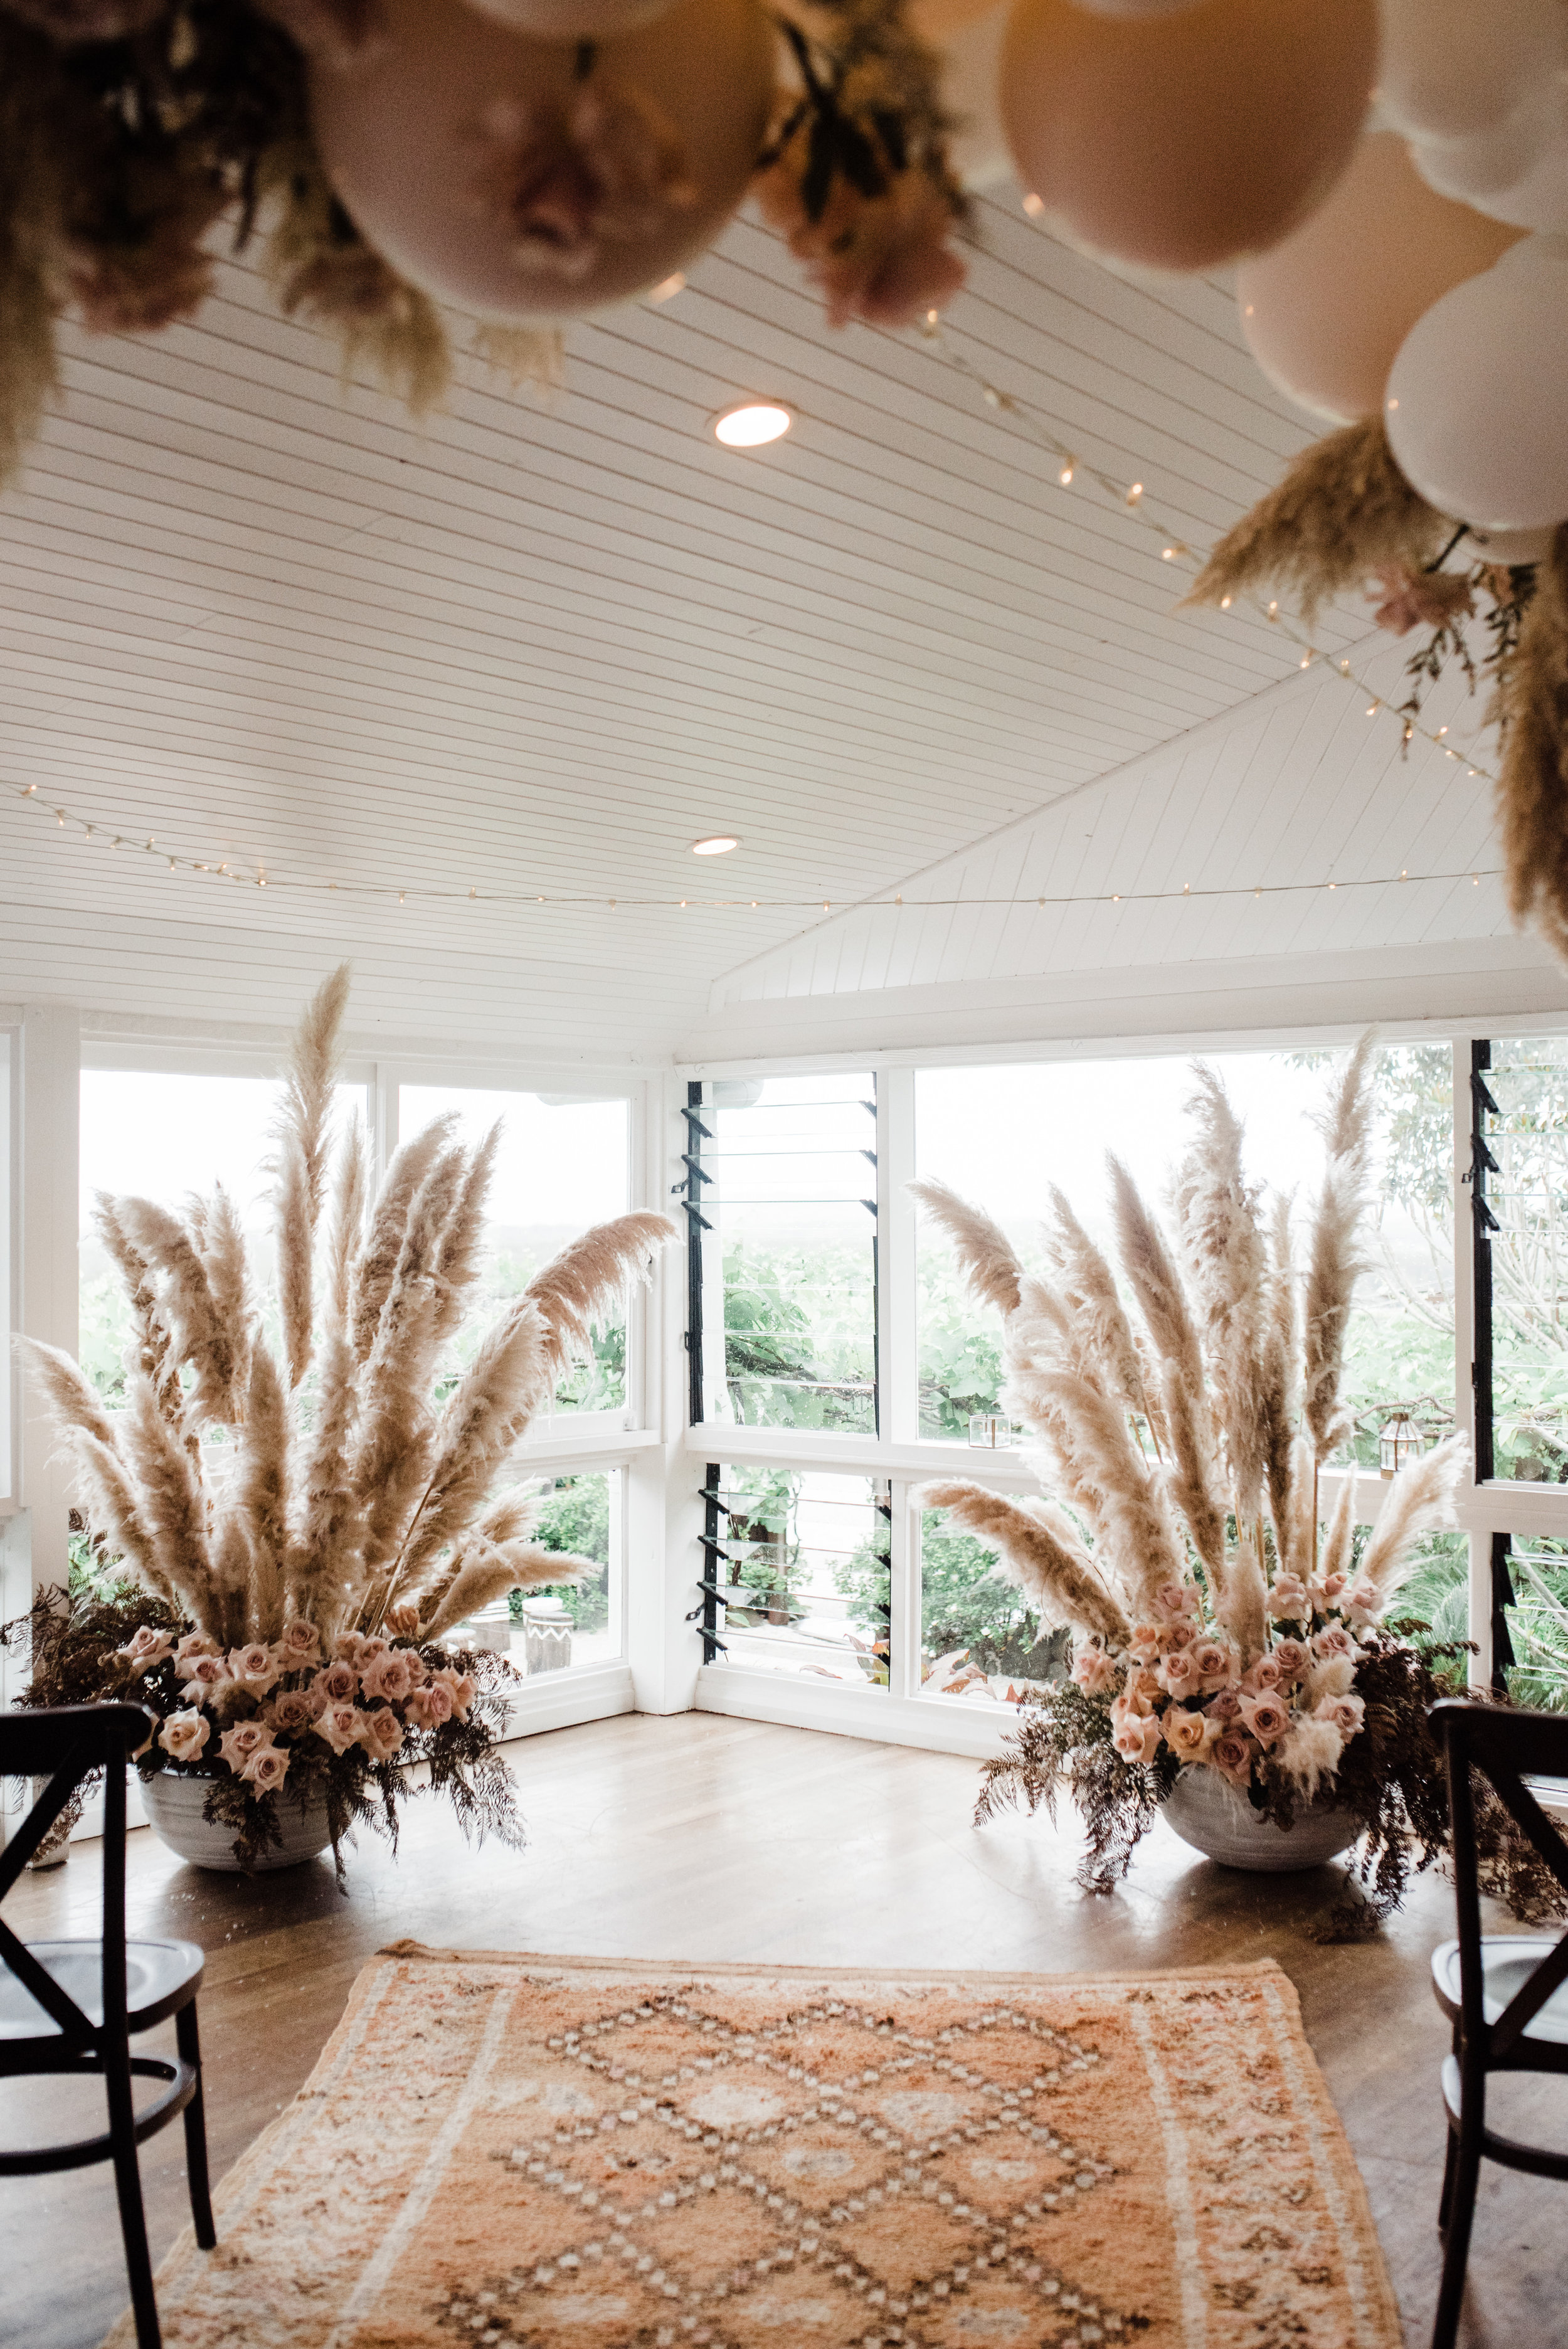 Florals - Wilderness Flowers | Photo - Pineapple Images